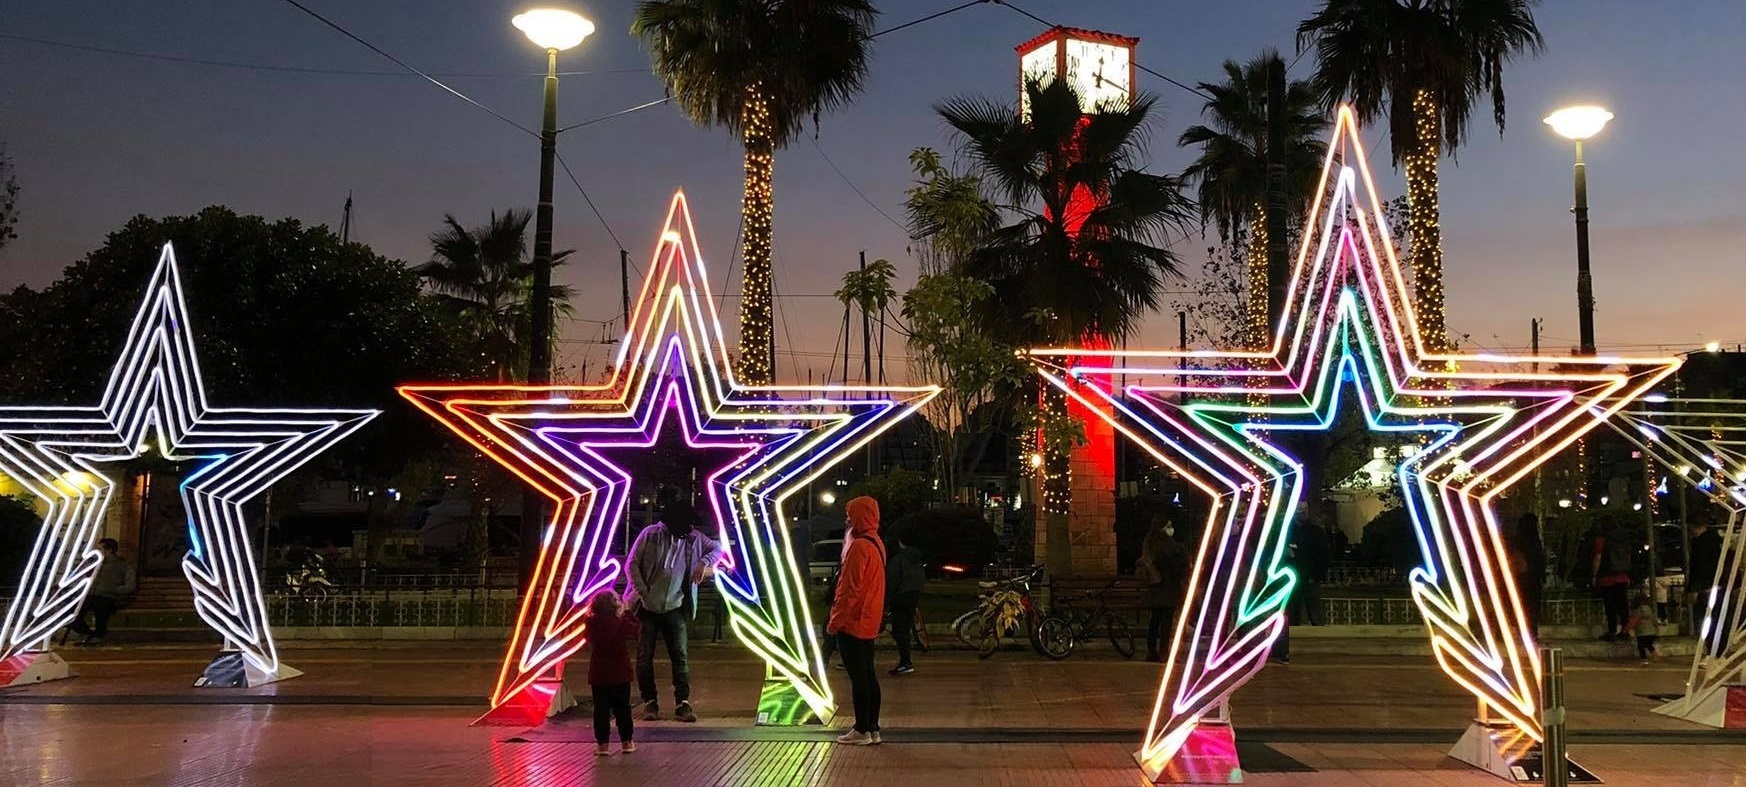 3 More Reasons to Love Christmas Found in Piraeus